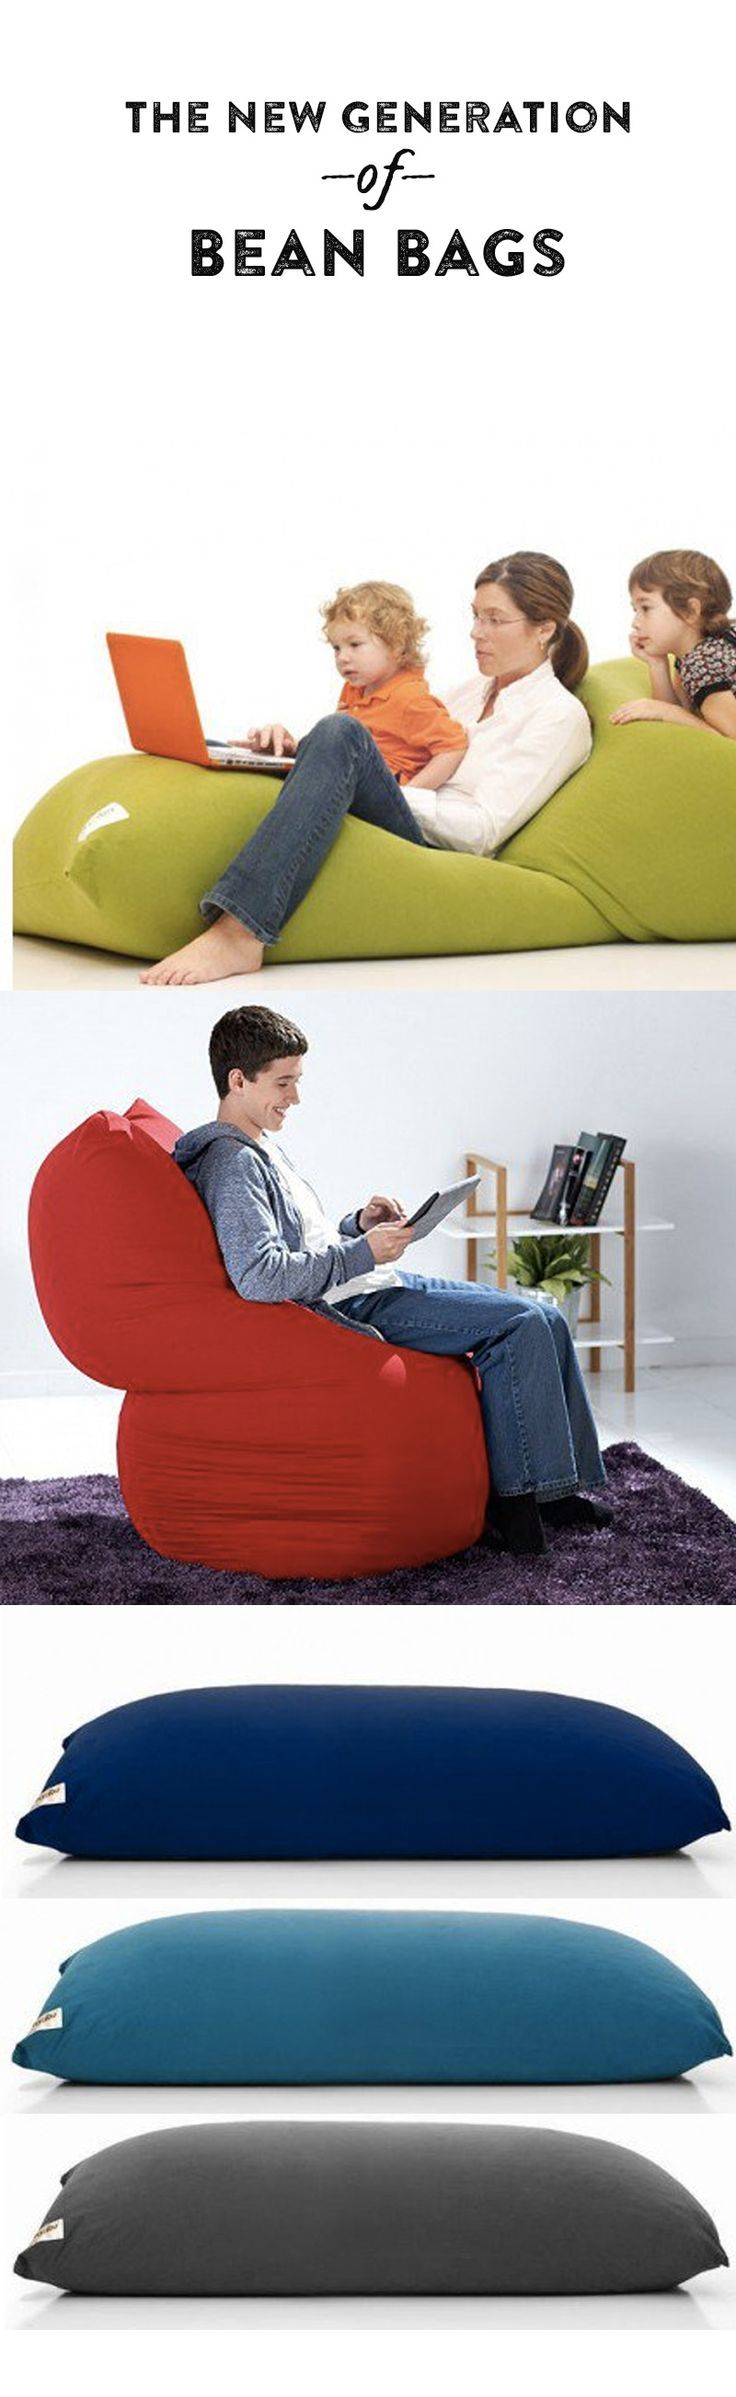 A Yogibo may resemble an oldschool bean bag chair, but it